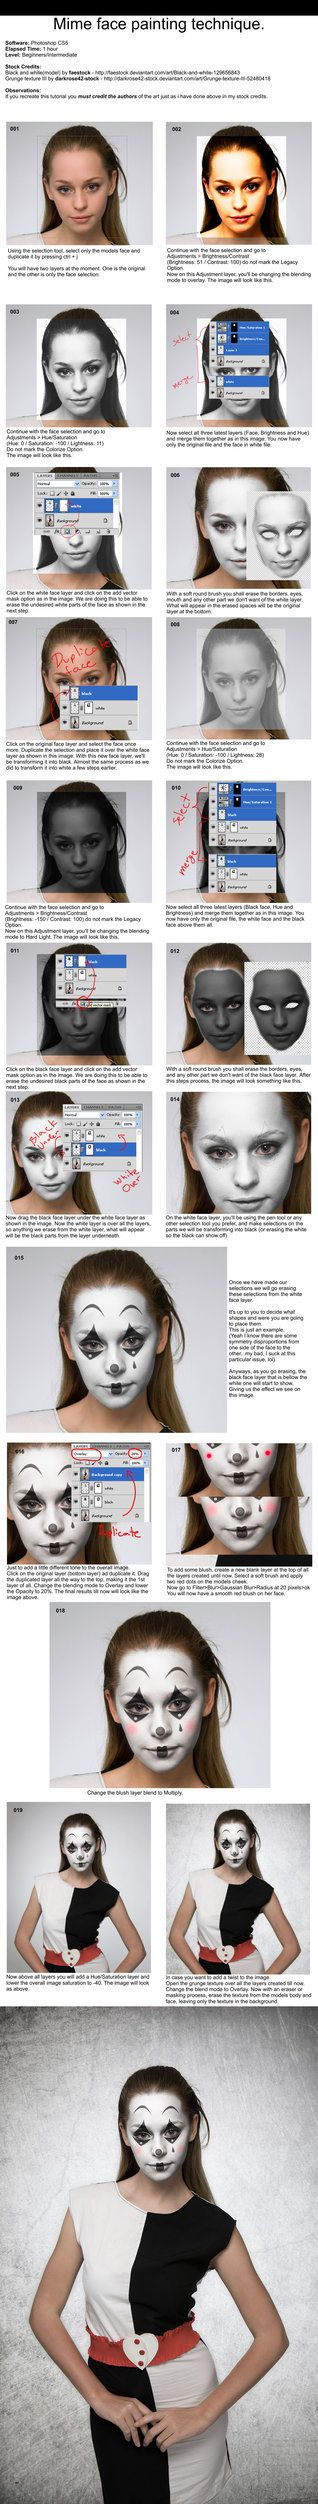 Mime Face Painting Tutorial - Photoshop by =PSHoudini on deviantART